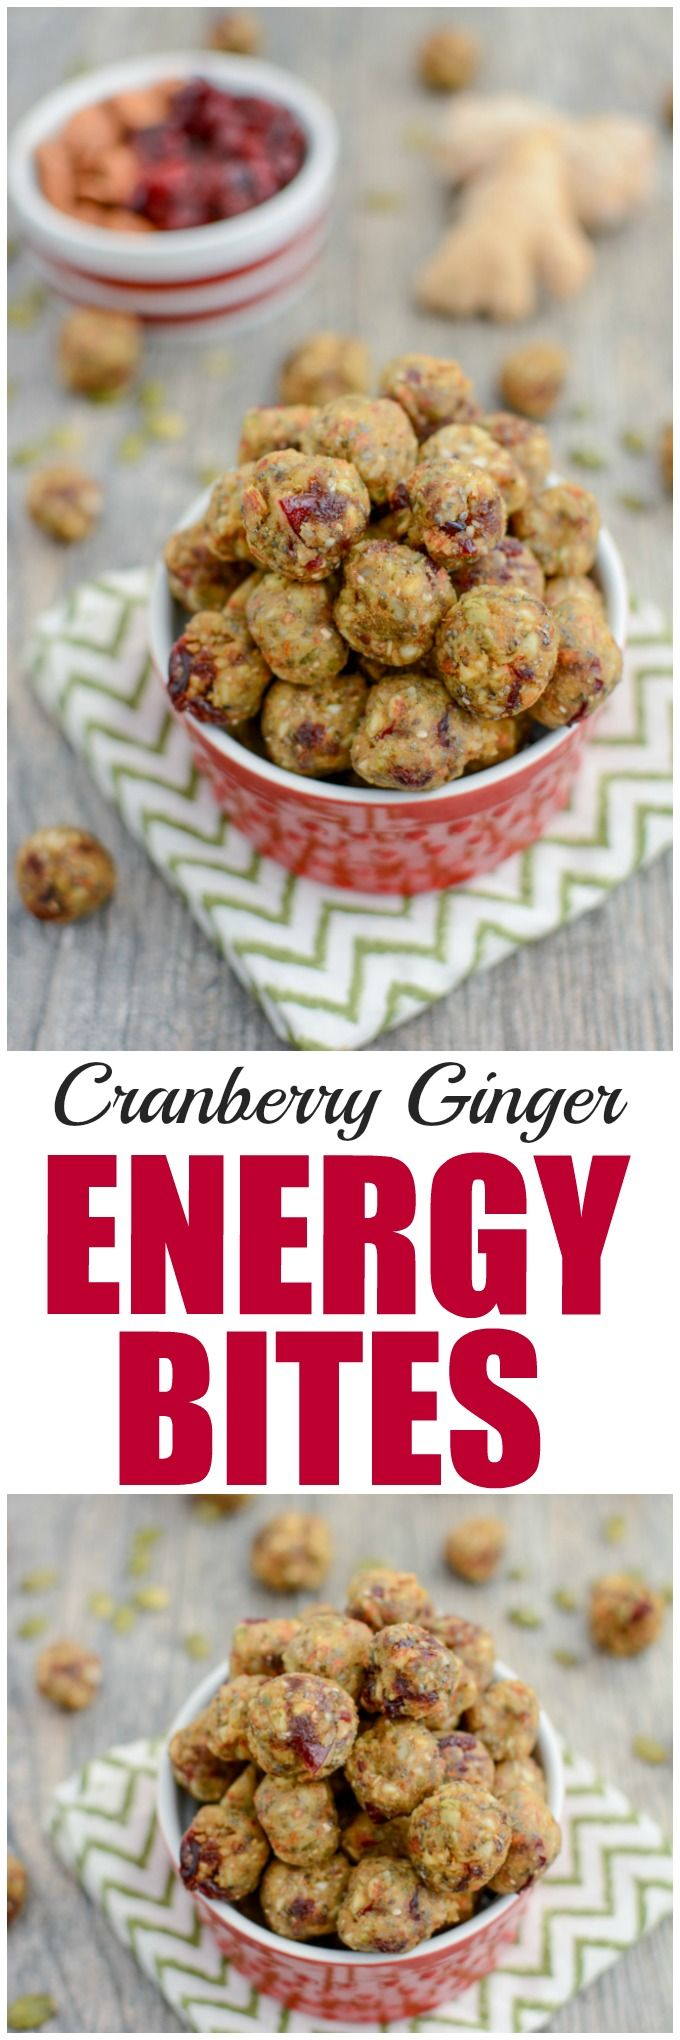 (AD) These Cranberry Ginger Energy Bites are the perfect healthy snack to power you through until lunch or dinner! Make them mini and enjoy a few when you need an energy boost!